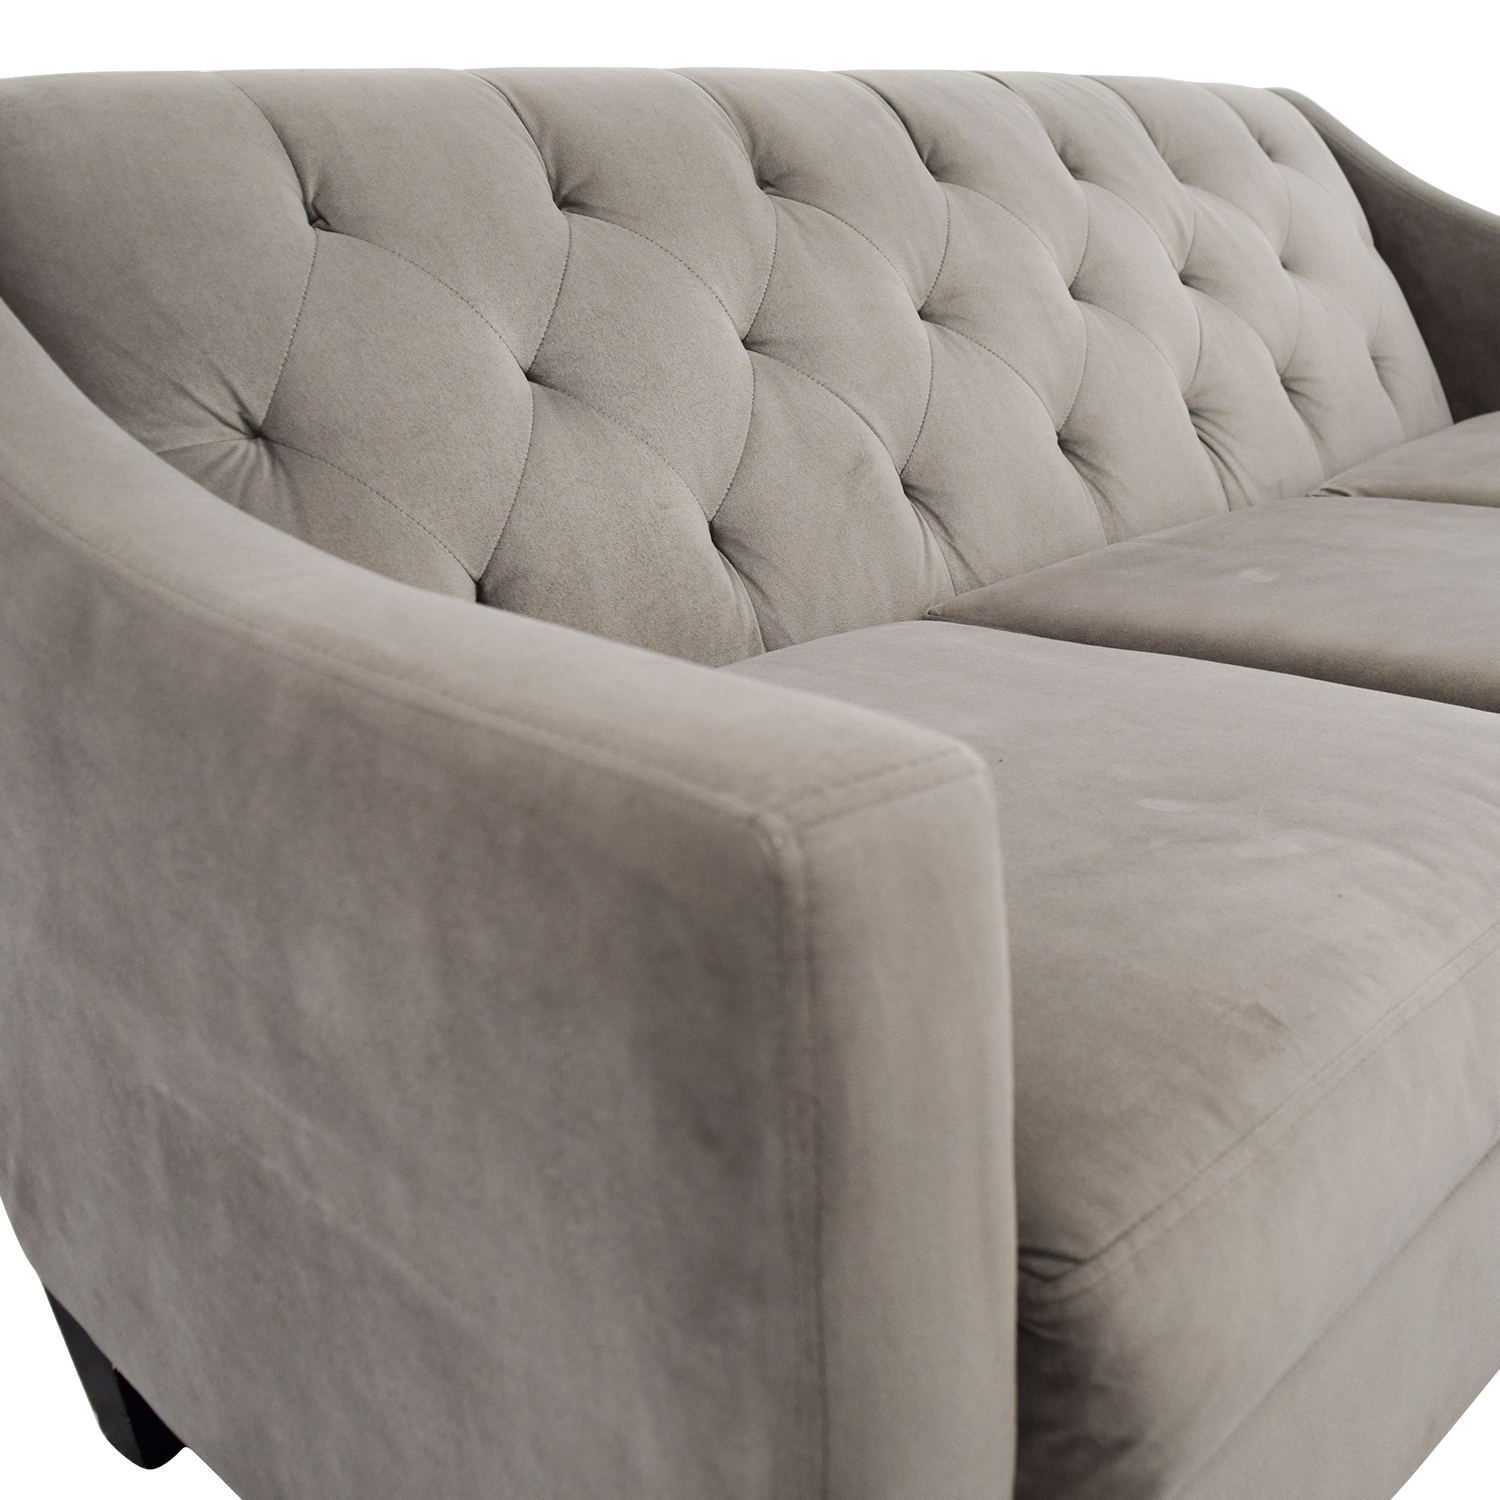 Macys Macys Gray Microfiber Tufted Three-Cushion Couch dimensions